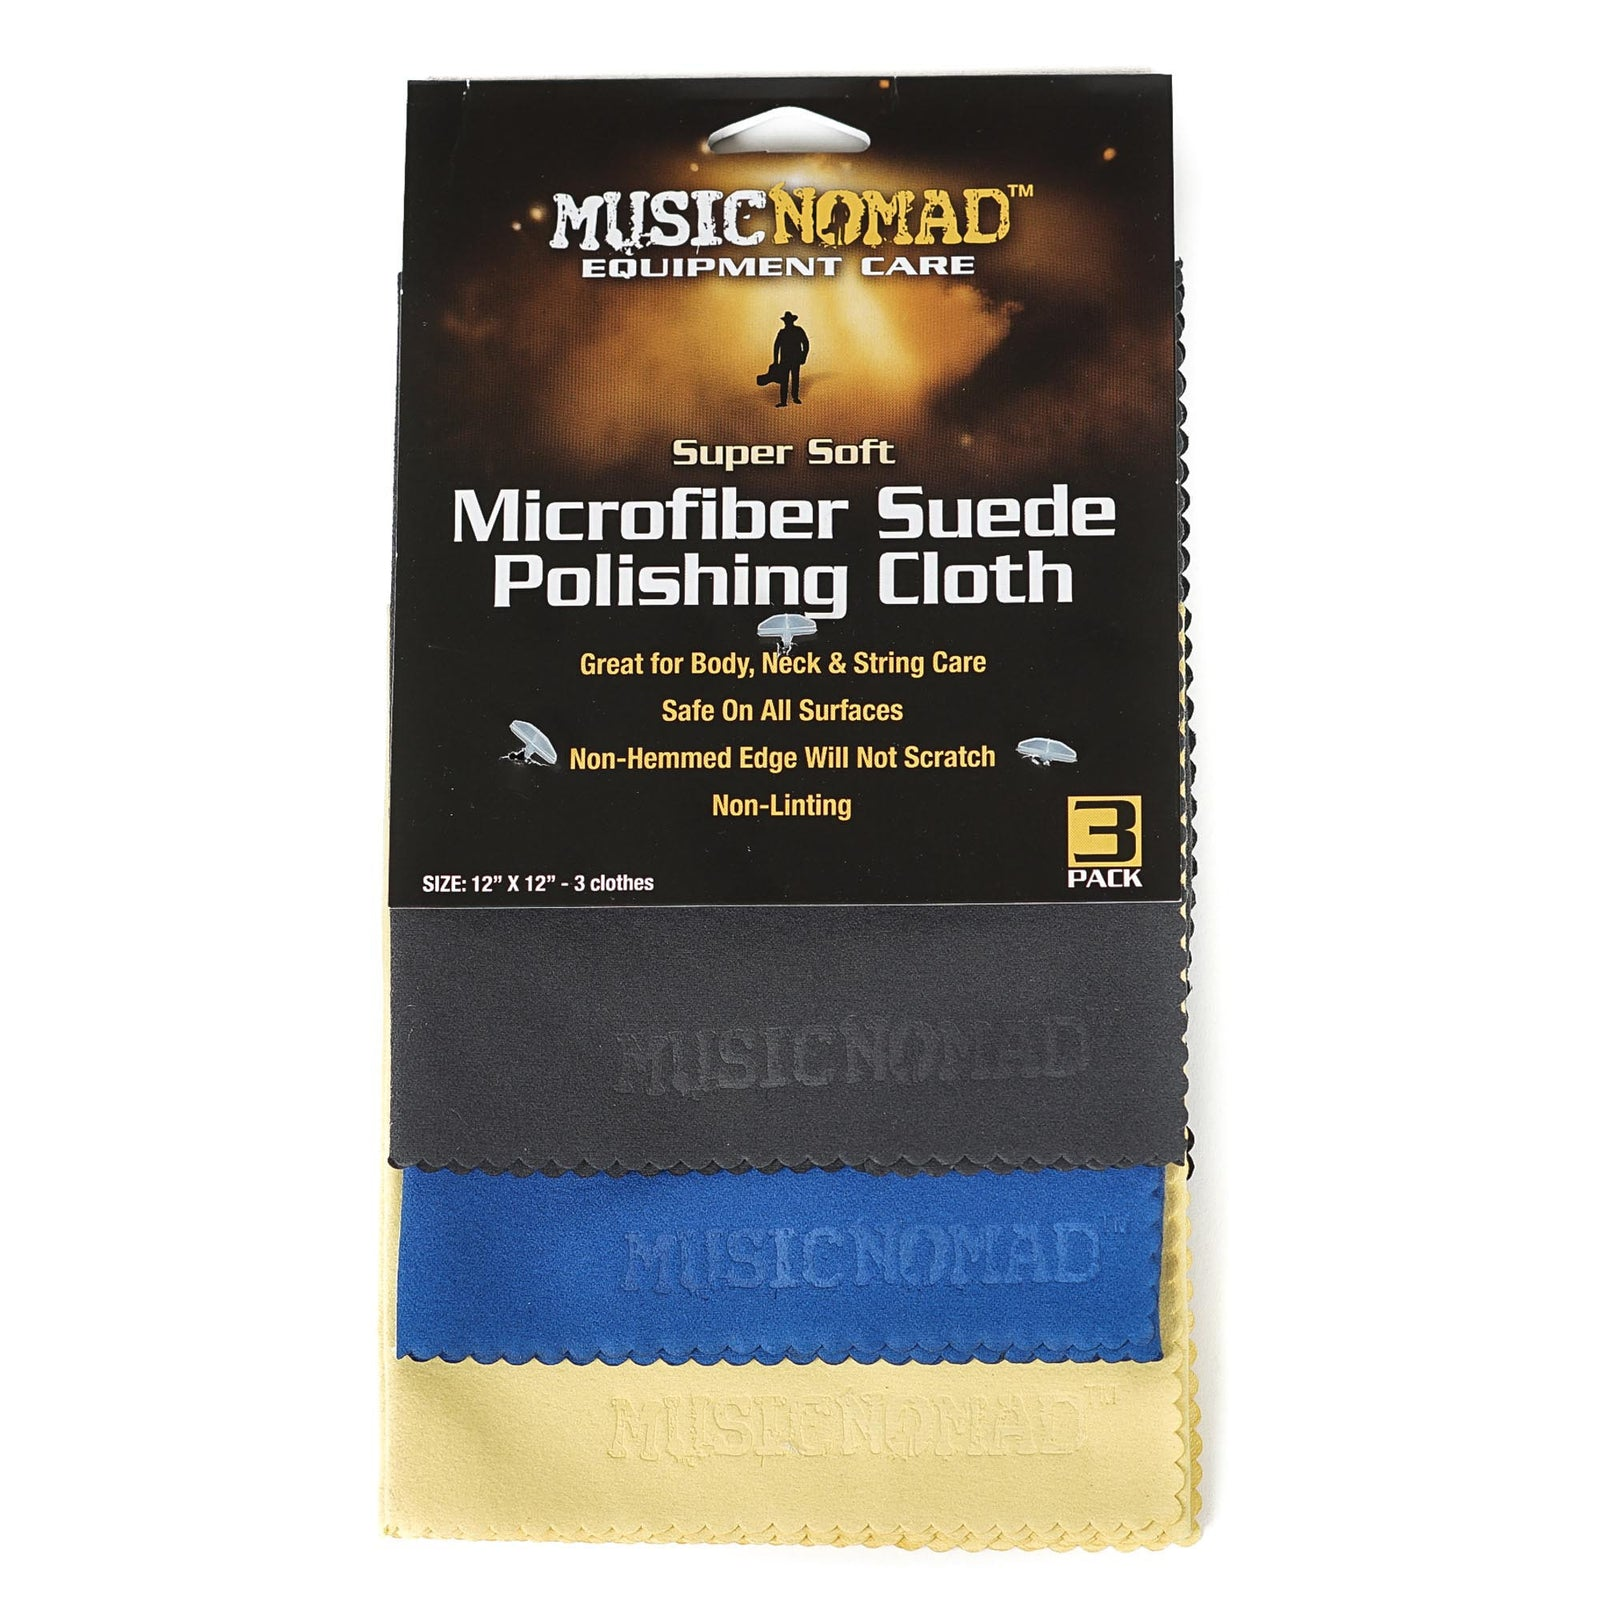 Music Nomad Super Soft Edgeless Microfiber Suede Polishing Cloths - 3 pack